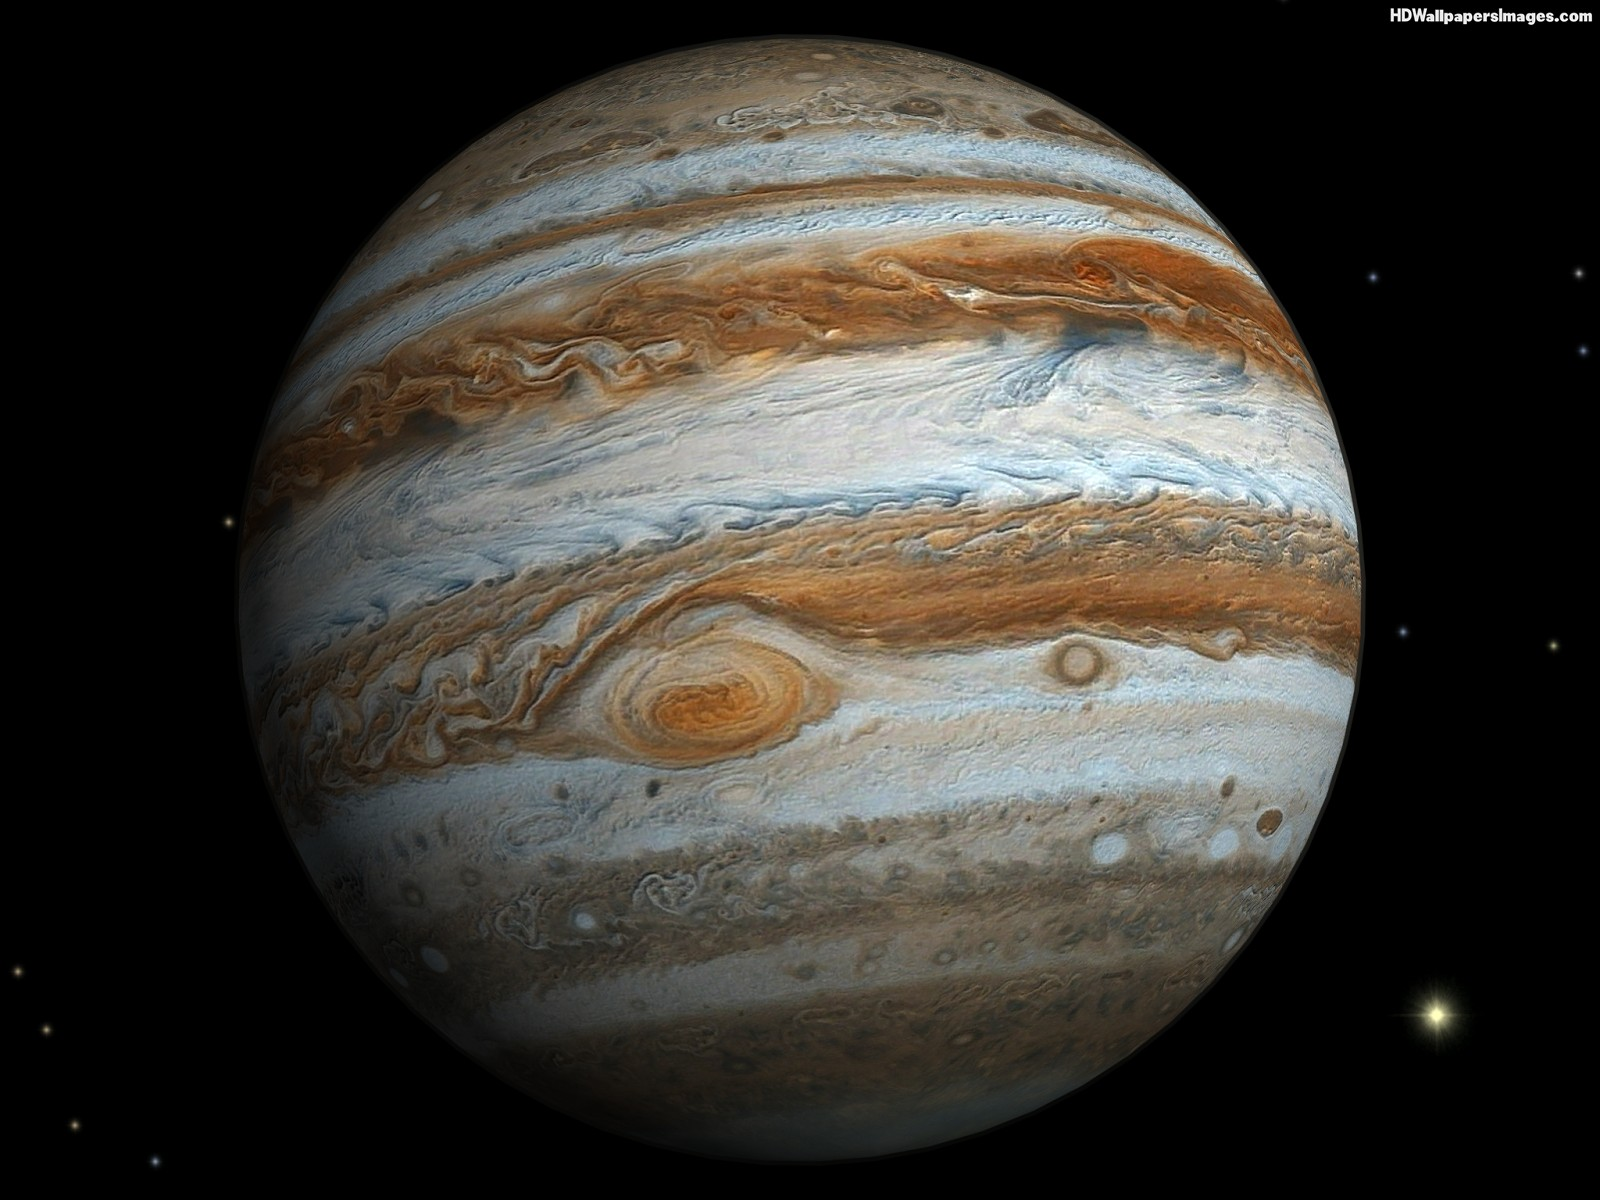 Planet Jupiter In Space Images, Pictures, Photos, HD Wallpapers 1234